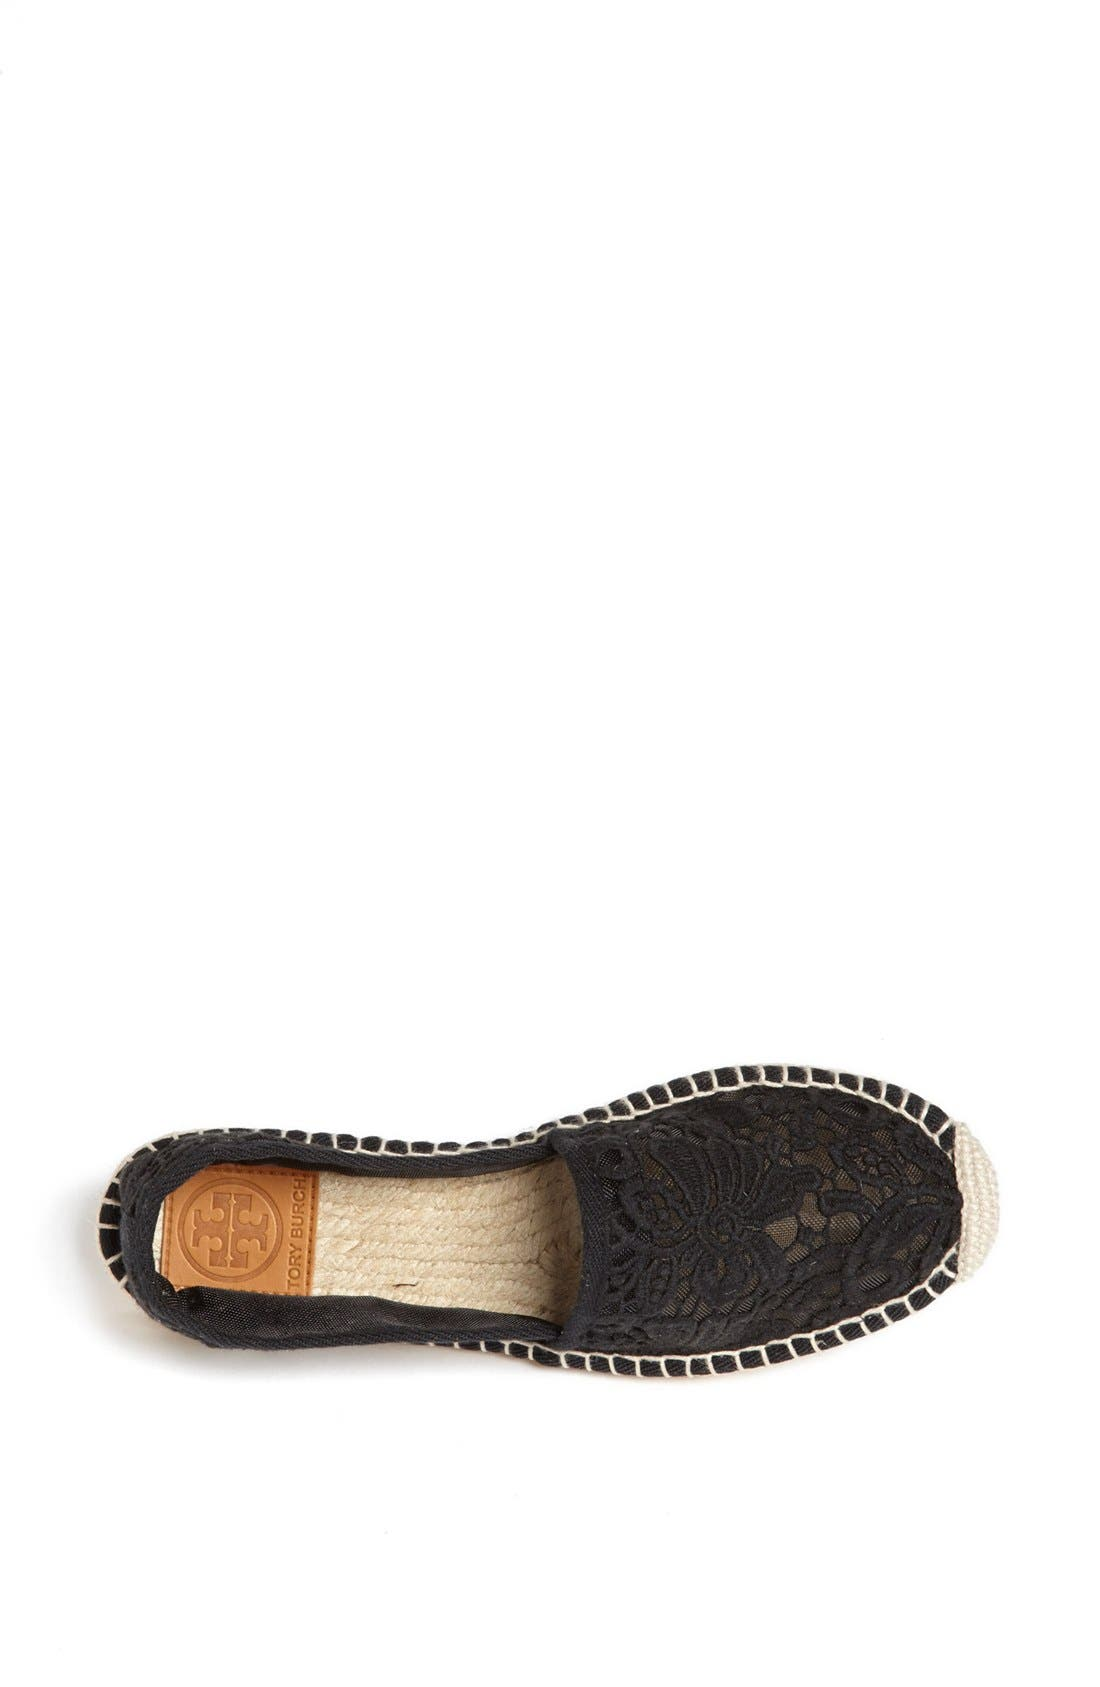 TORY BURCH,                             'Abbe' Espadrille,                             Alternate thumbnail 4, color,                             001